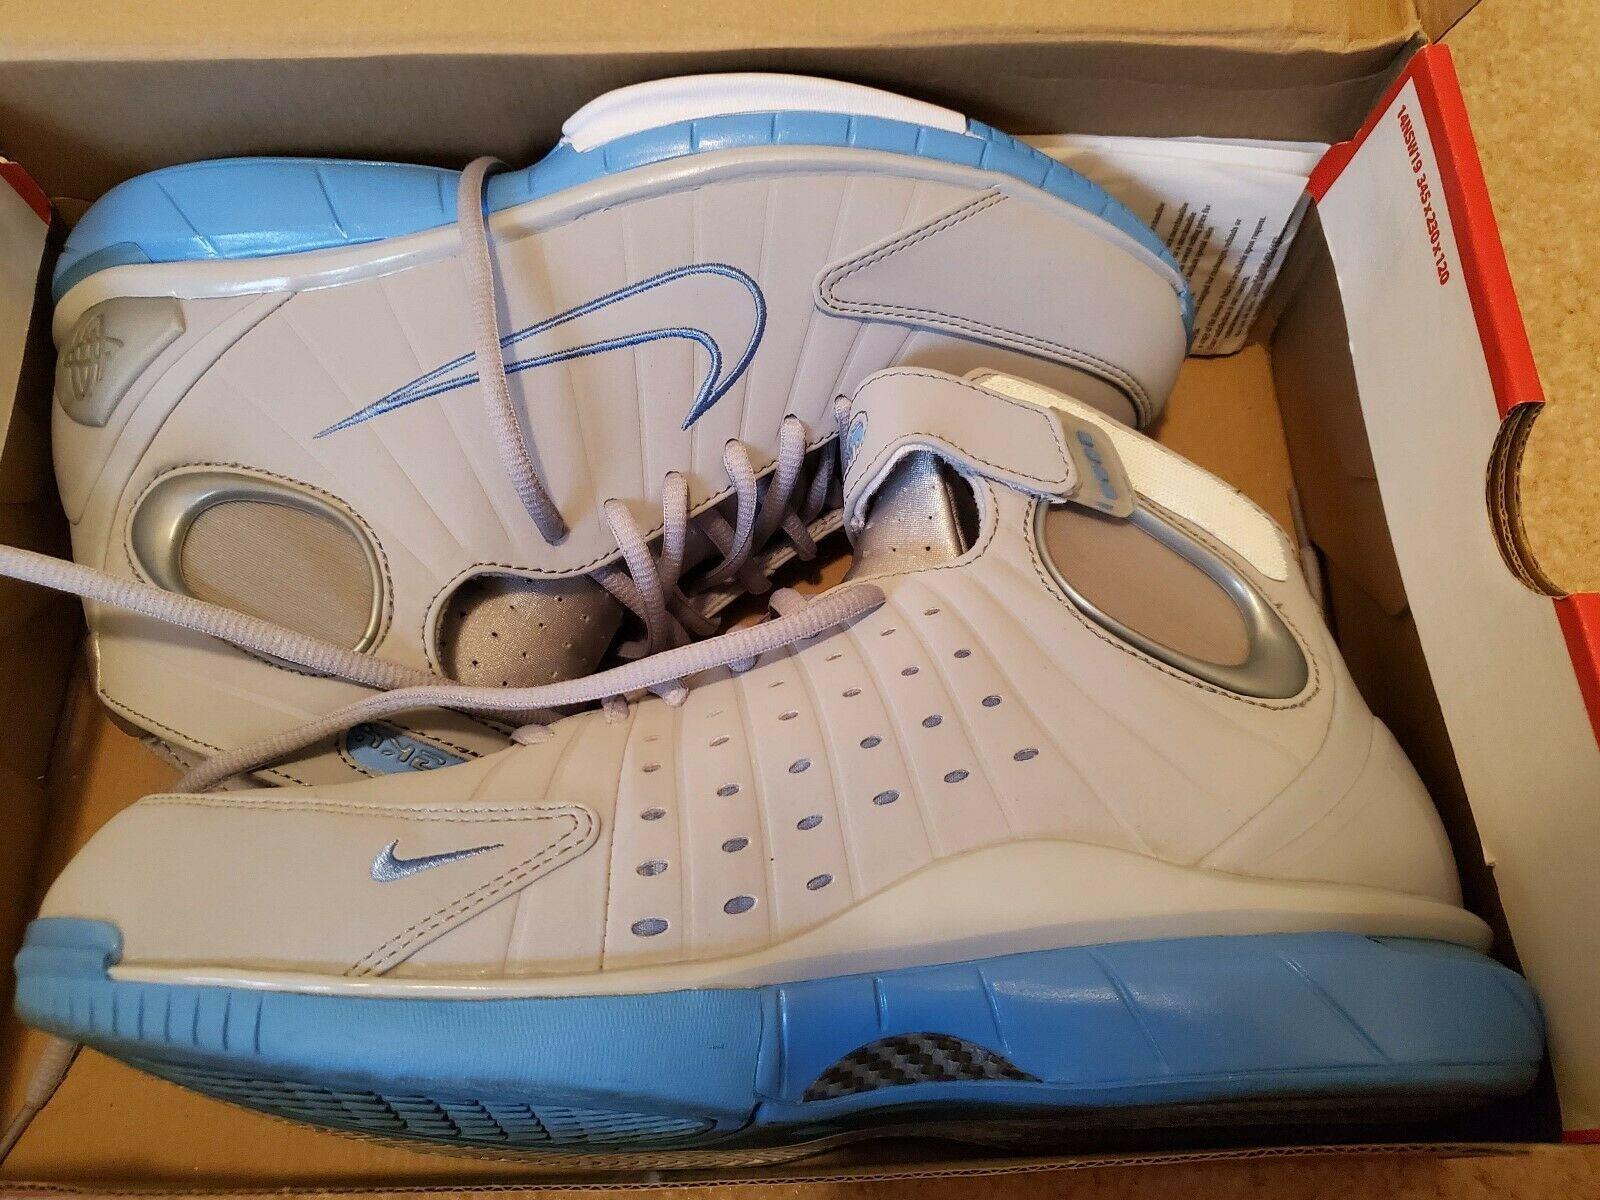 Nike Air Zoom Huarache 2K4, MPLS, Kobe, Size 10, Great Condition